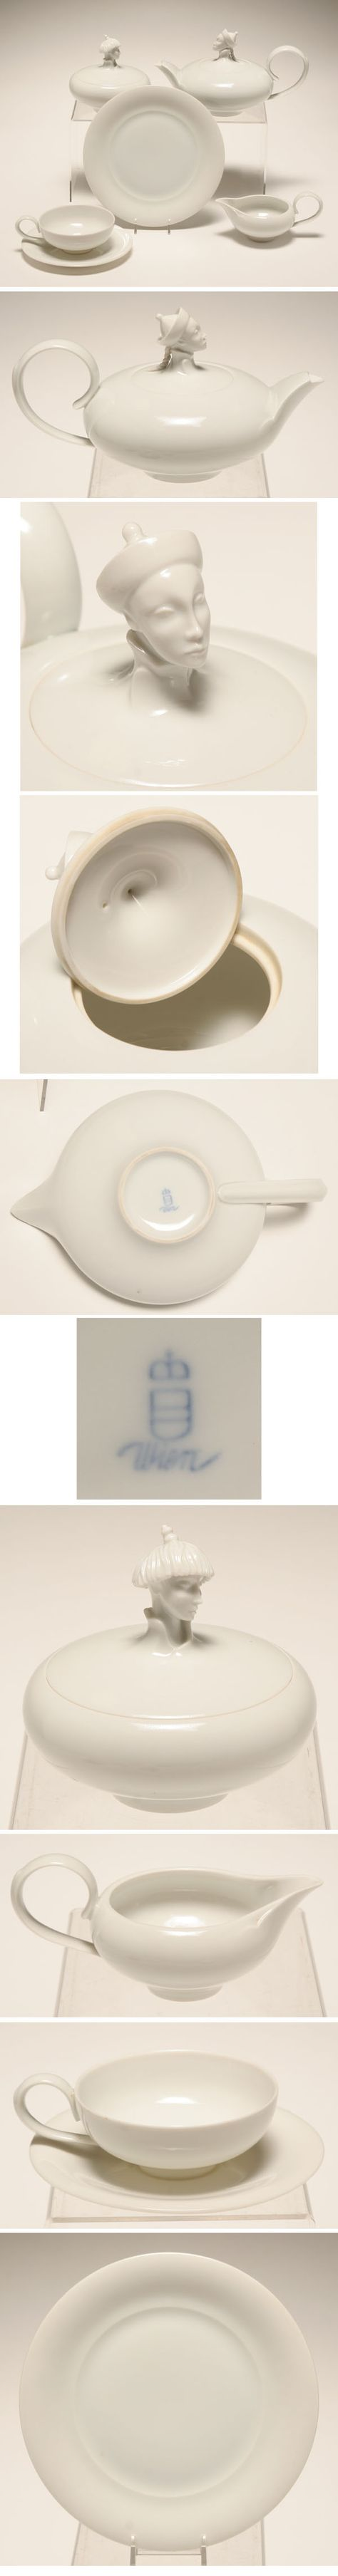 FIRST Top rated Augarten Wien Michael Powolny Porcelain